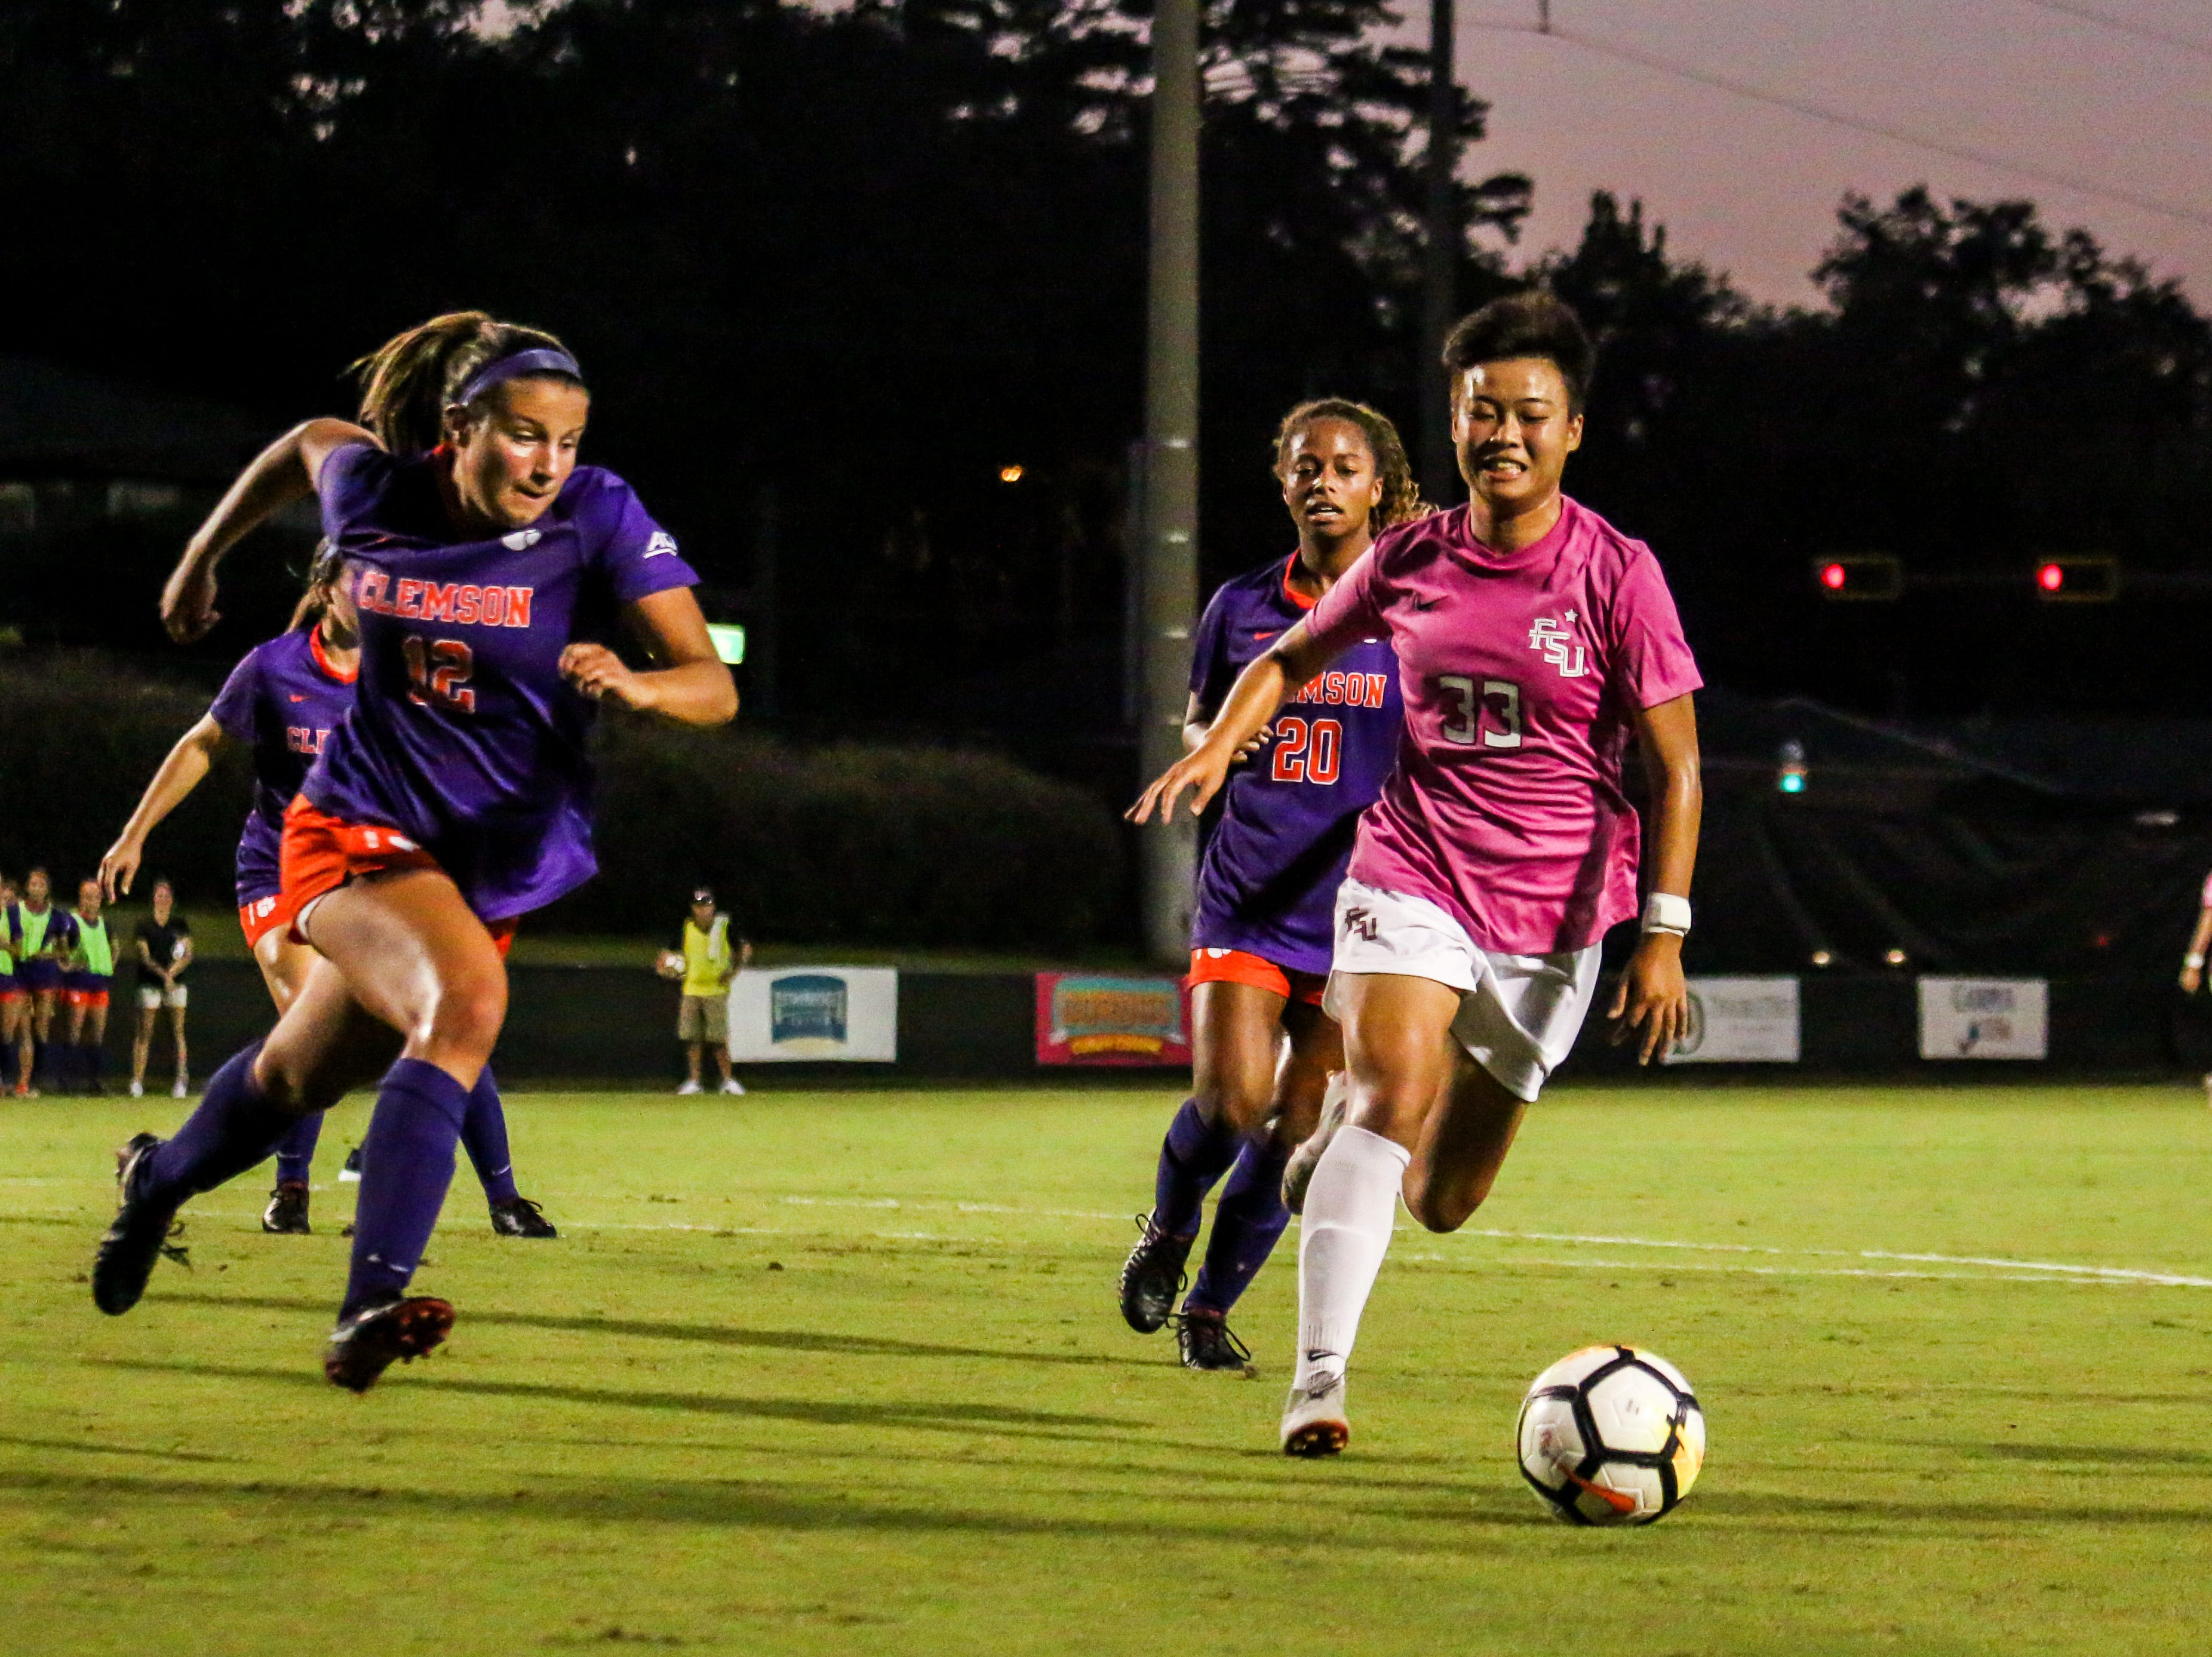 Yujie Zhao (33) had a dominant performance in the midfield, but was held without a goal to her name as Clemson's defense held strong on Thursday, October 4th at the Seminole Soccer Complex.